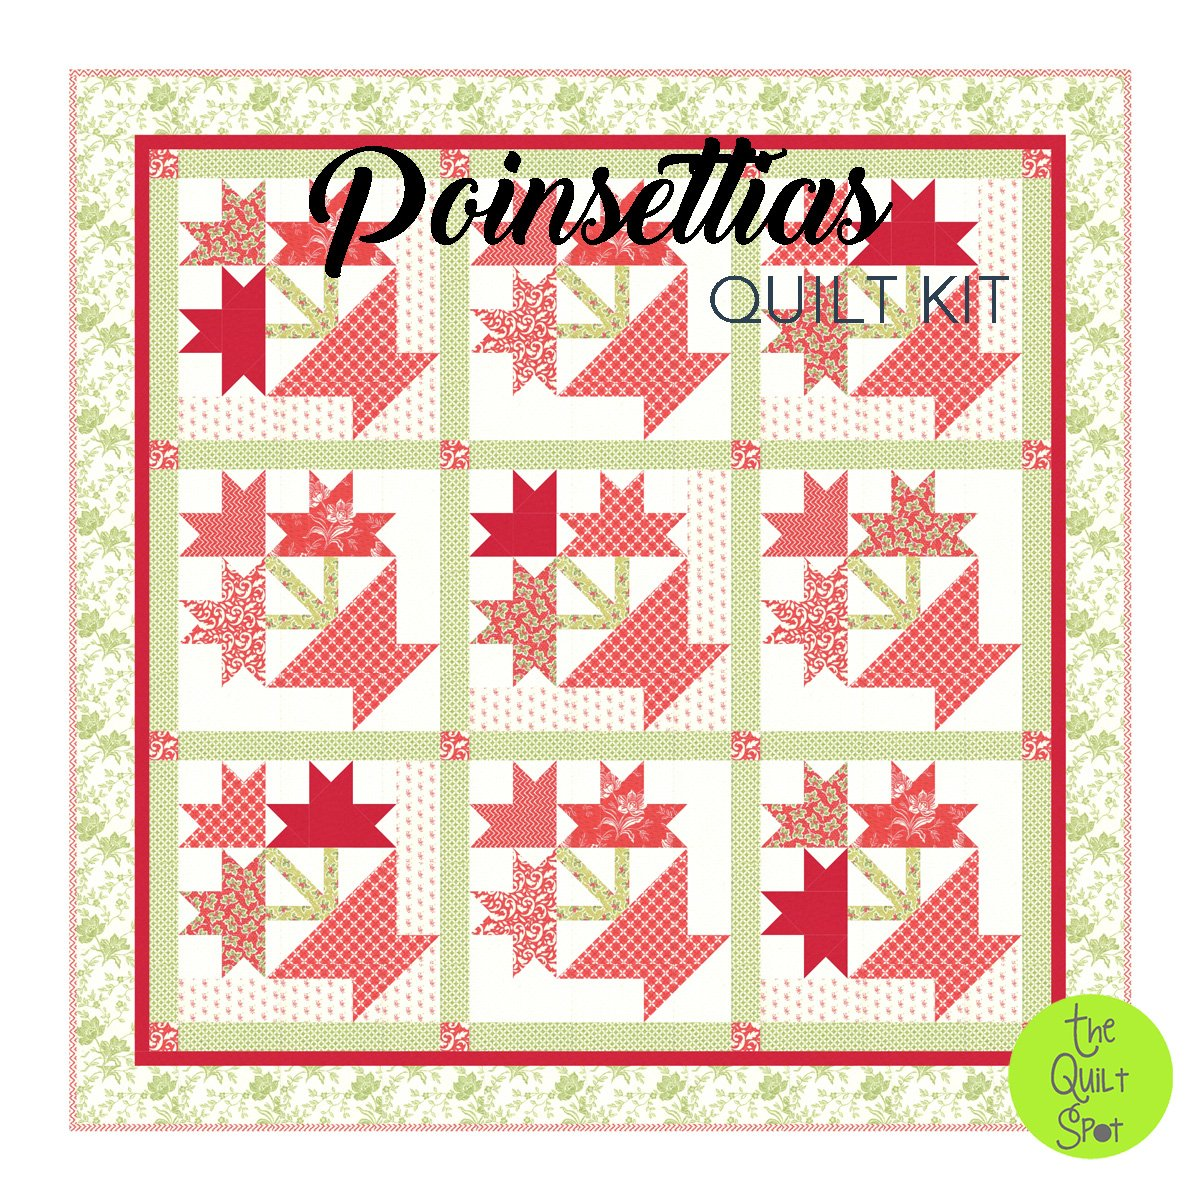 Poinsettias Quilt Kit